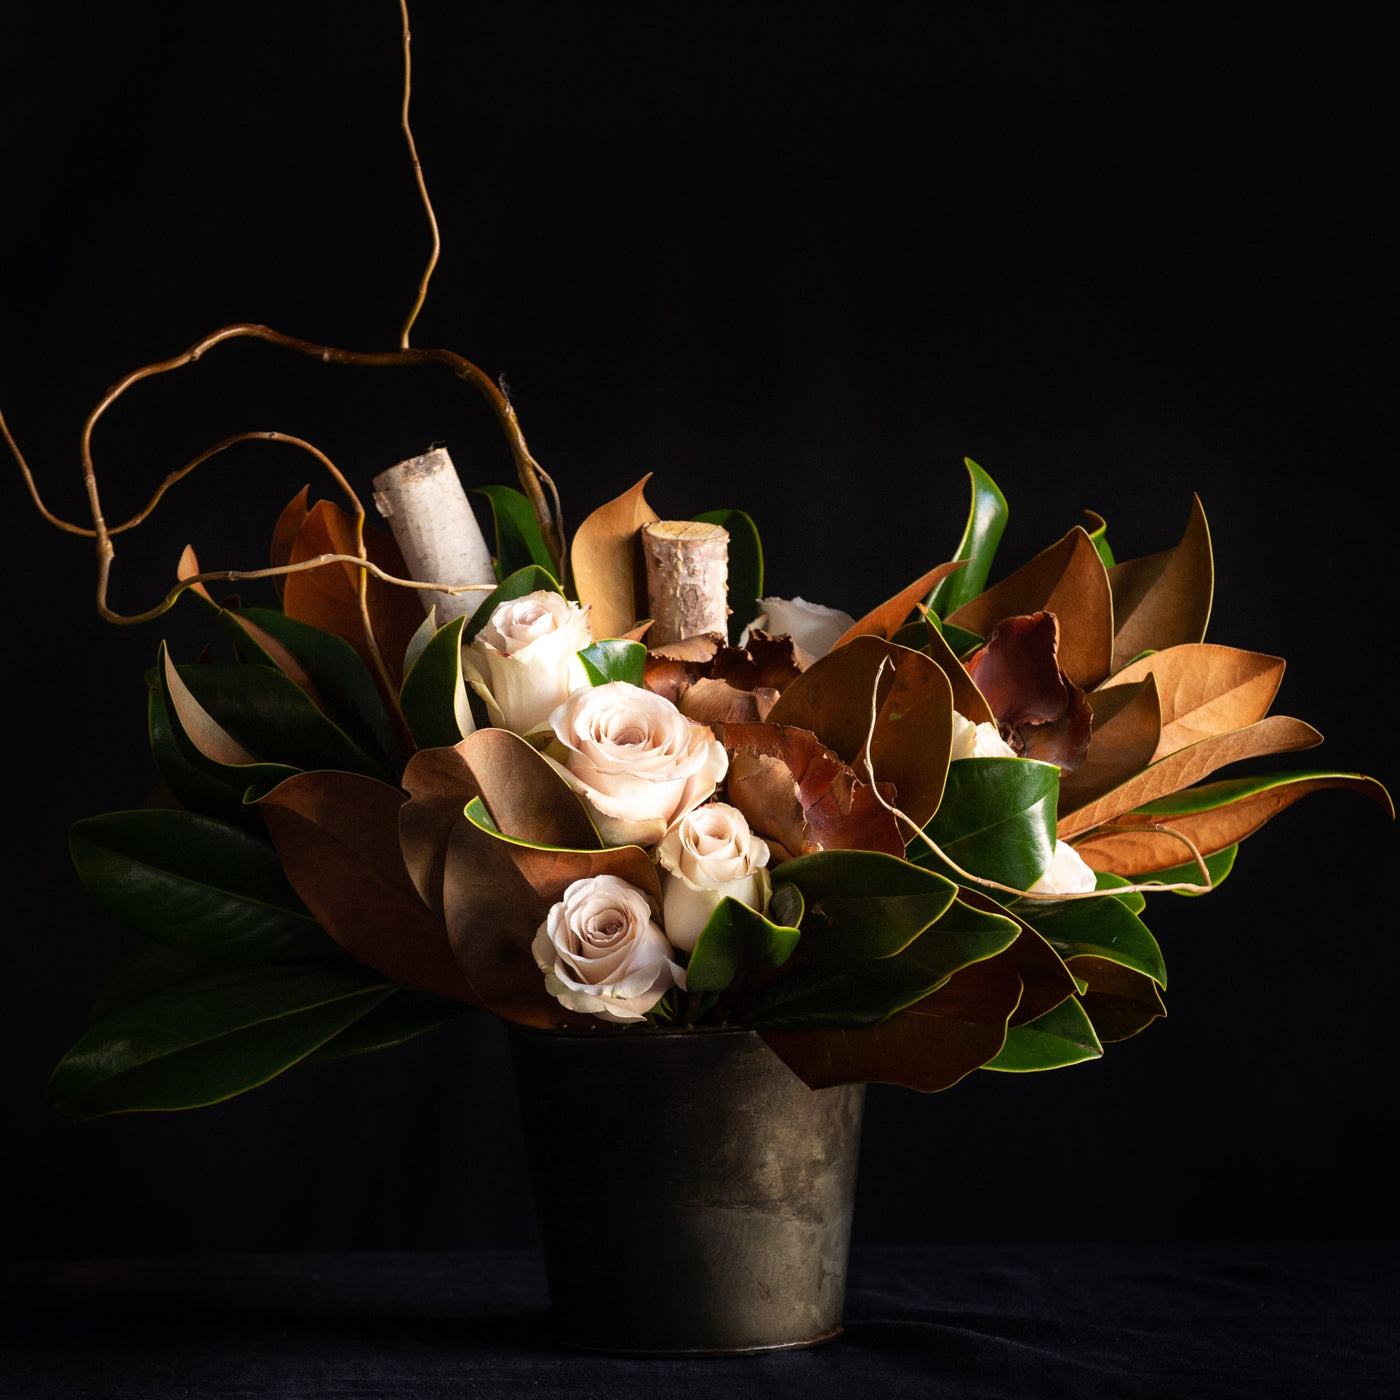 Taupe roses nestled in between magnolia leaves, birch, and curly willow. All around design.